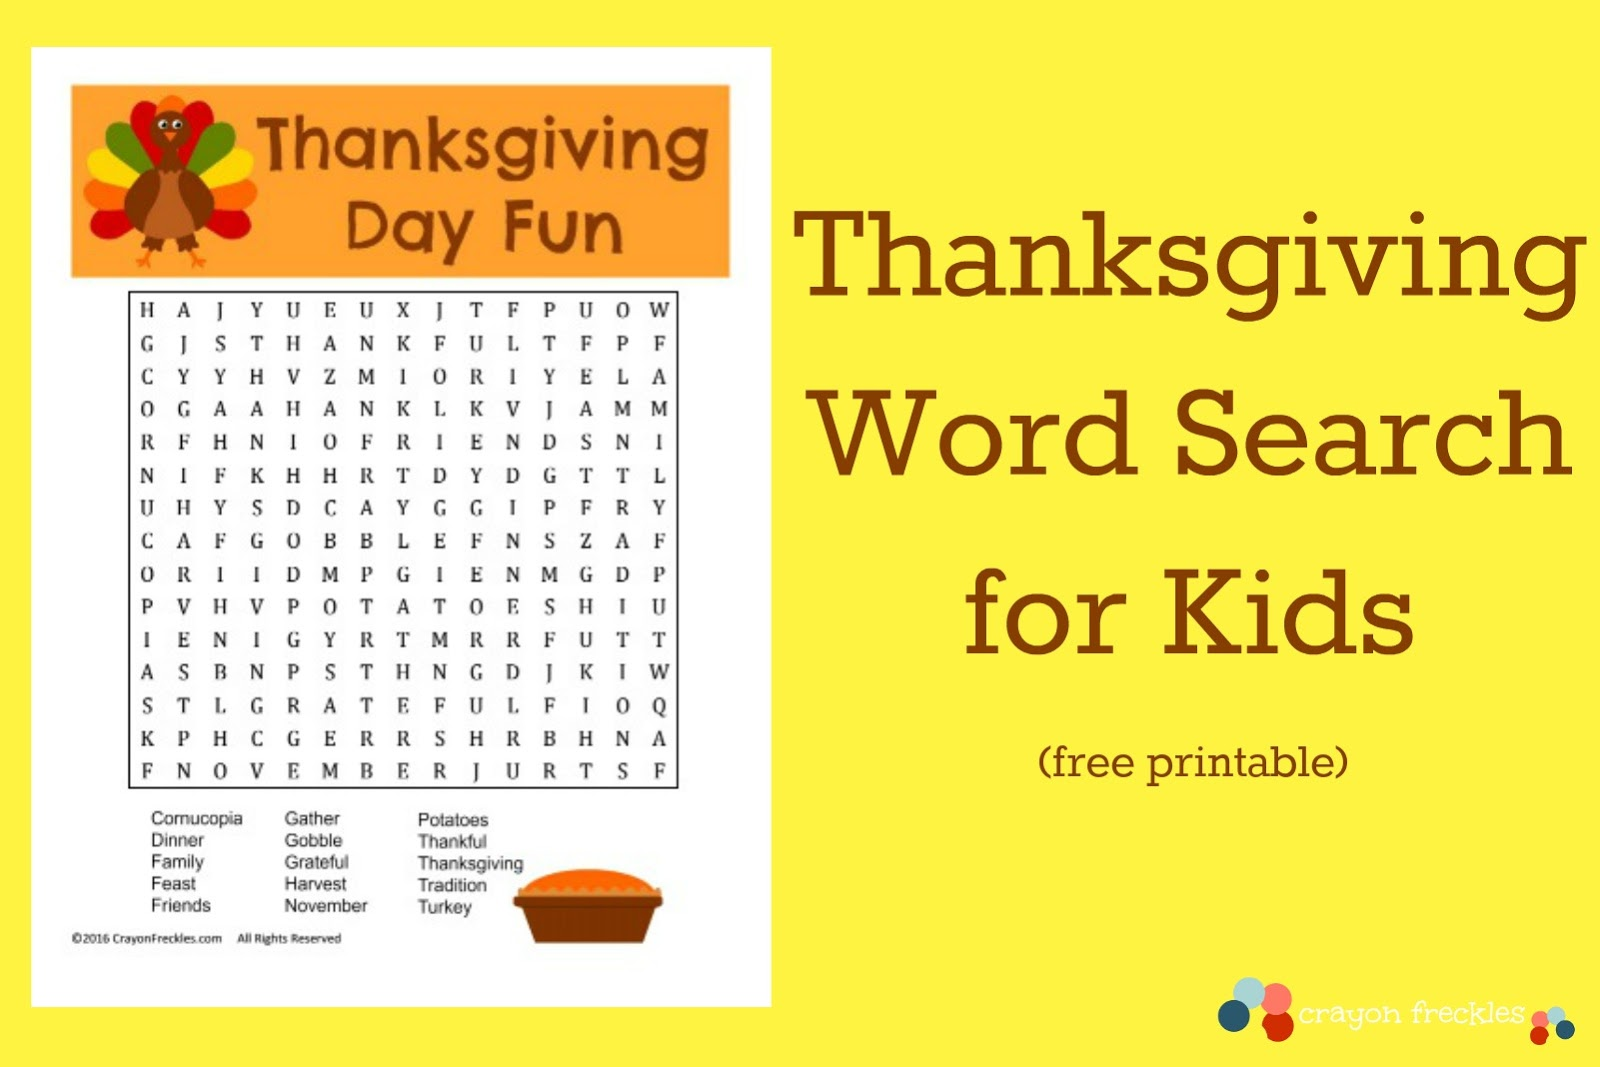 Thanksgiving Word Search For Kids Free Printable